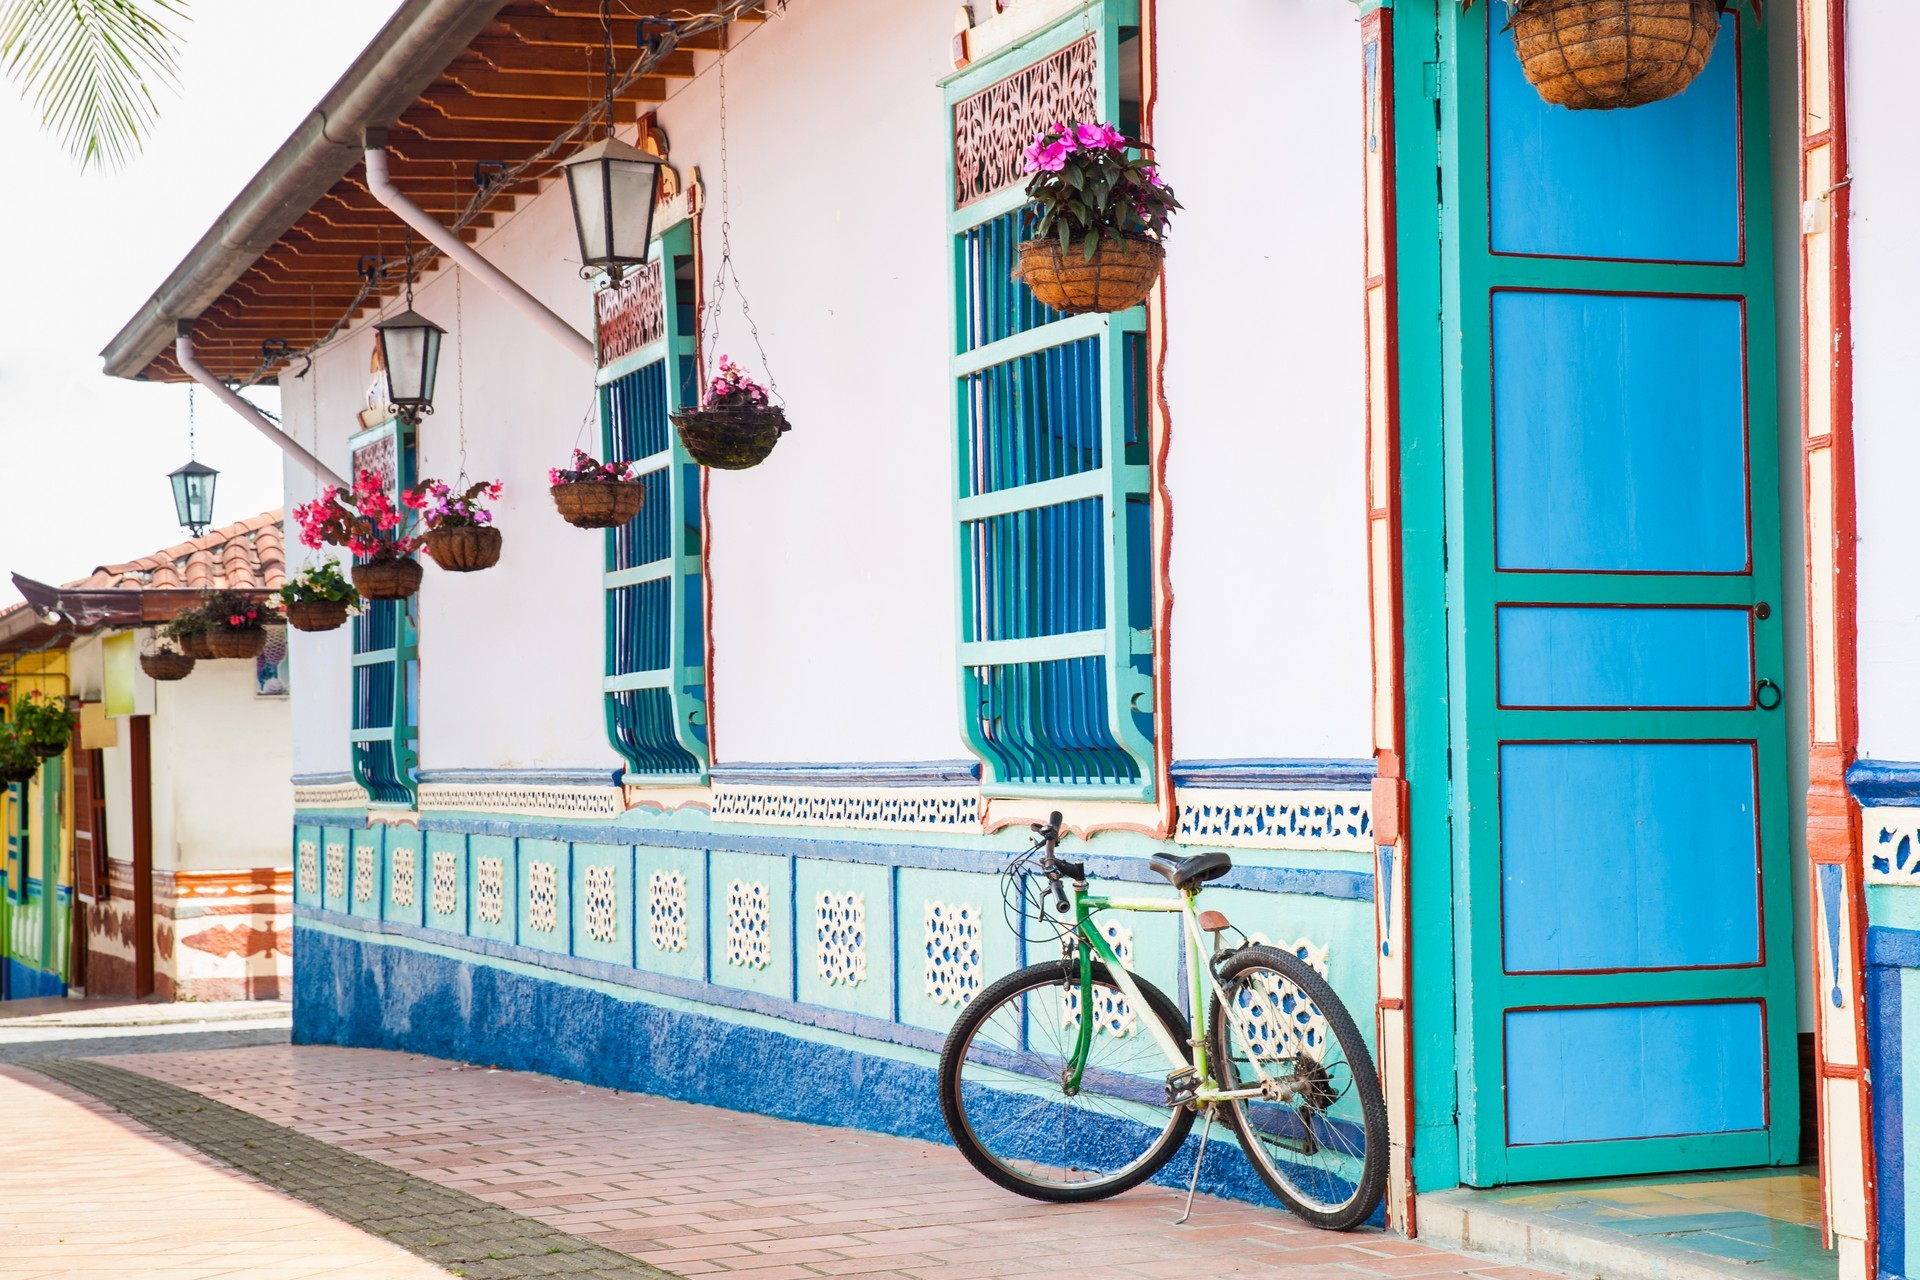 A bike outside of a house in Guatapé, Colombia